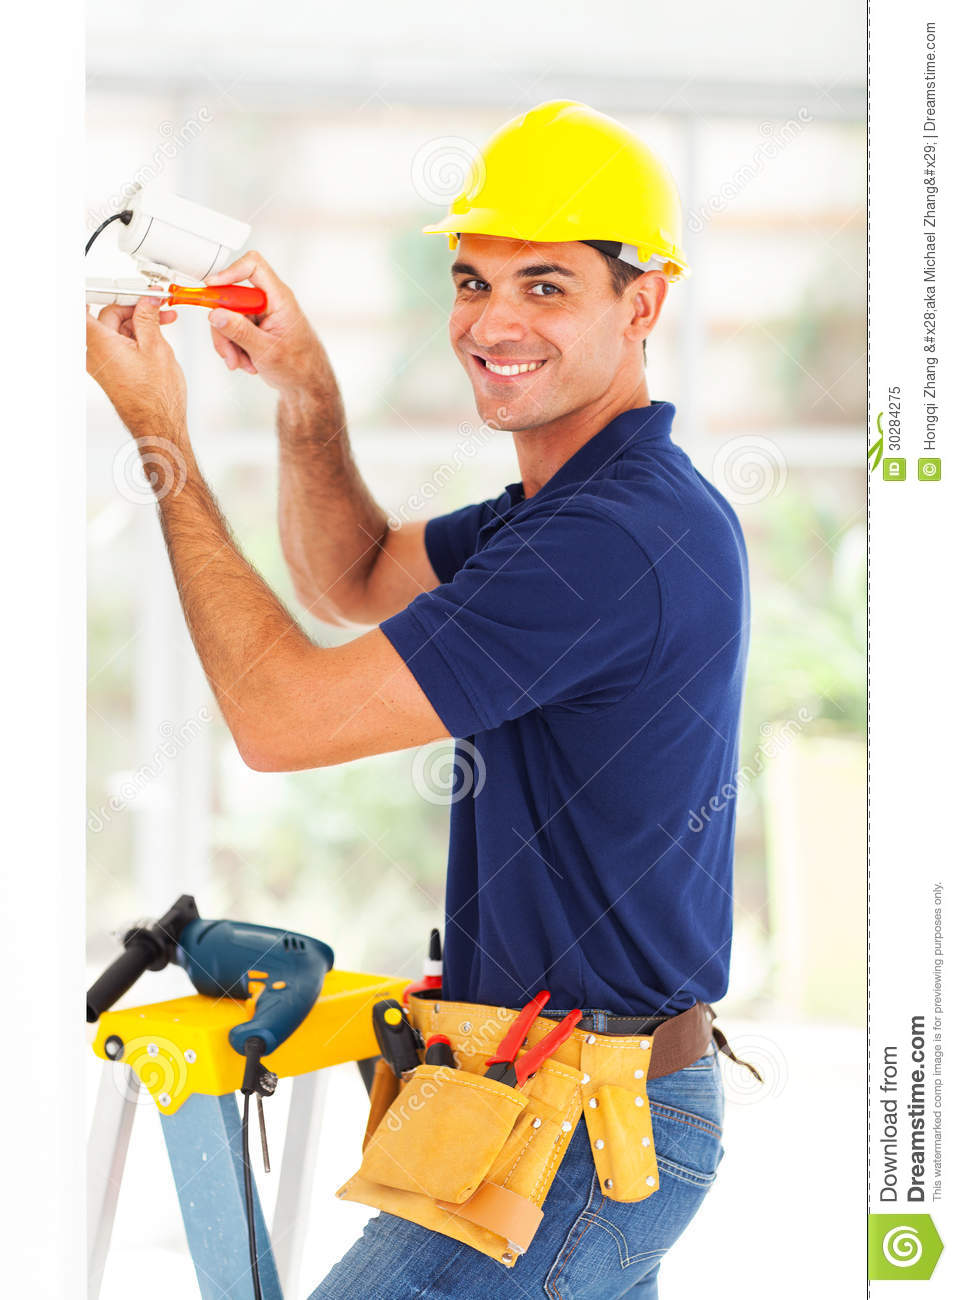 Cctv Camera Technician Stock Image Image Of Lens Adult